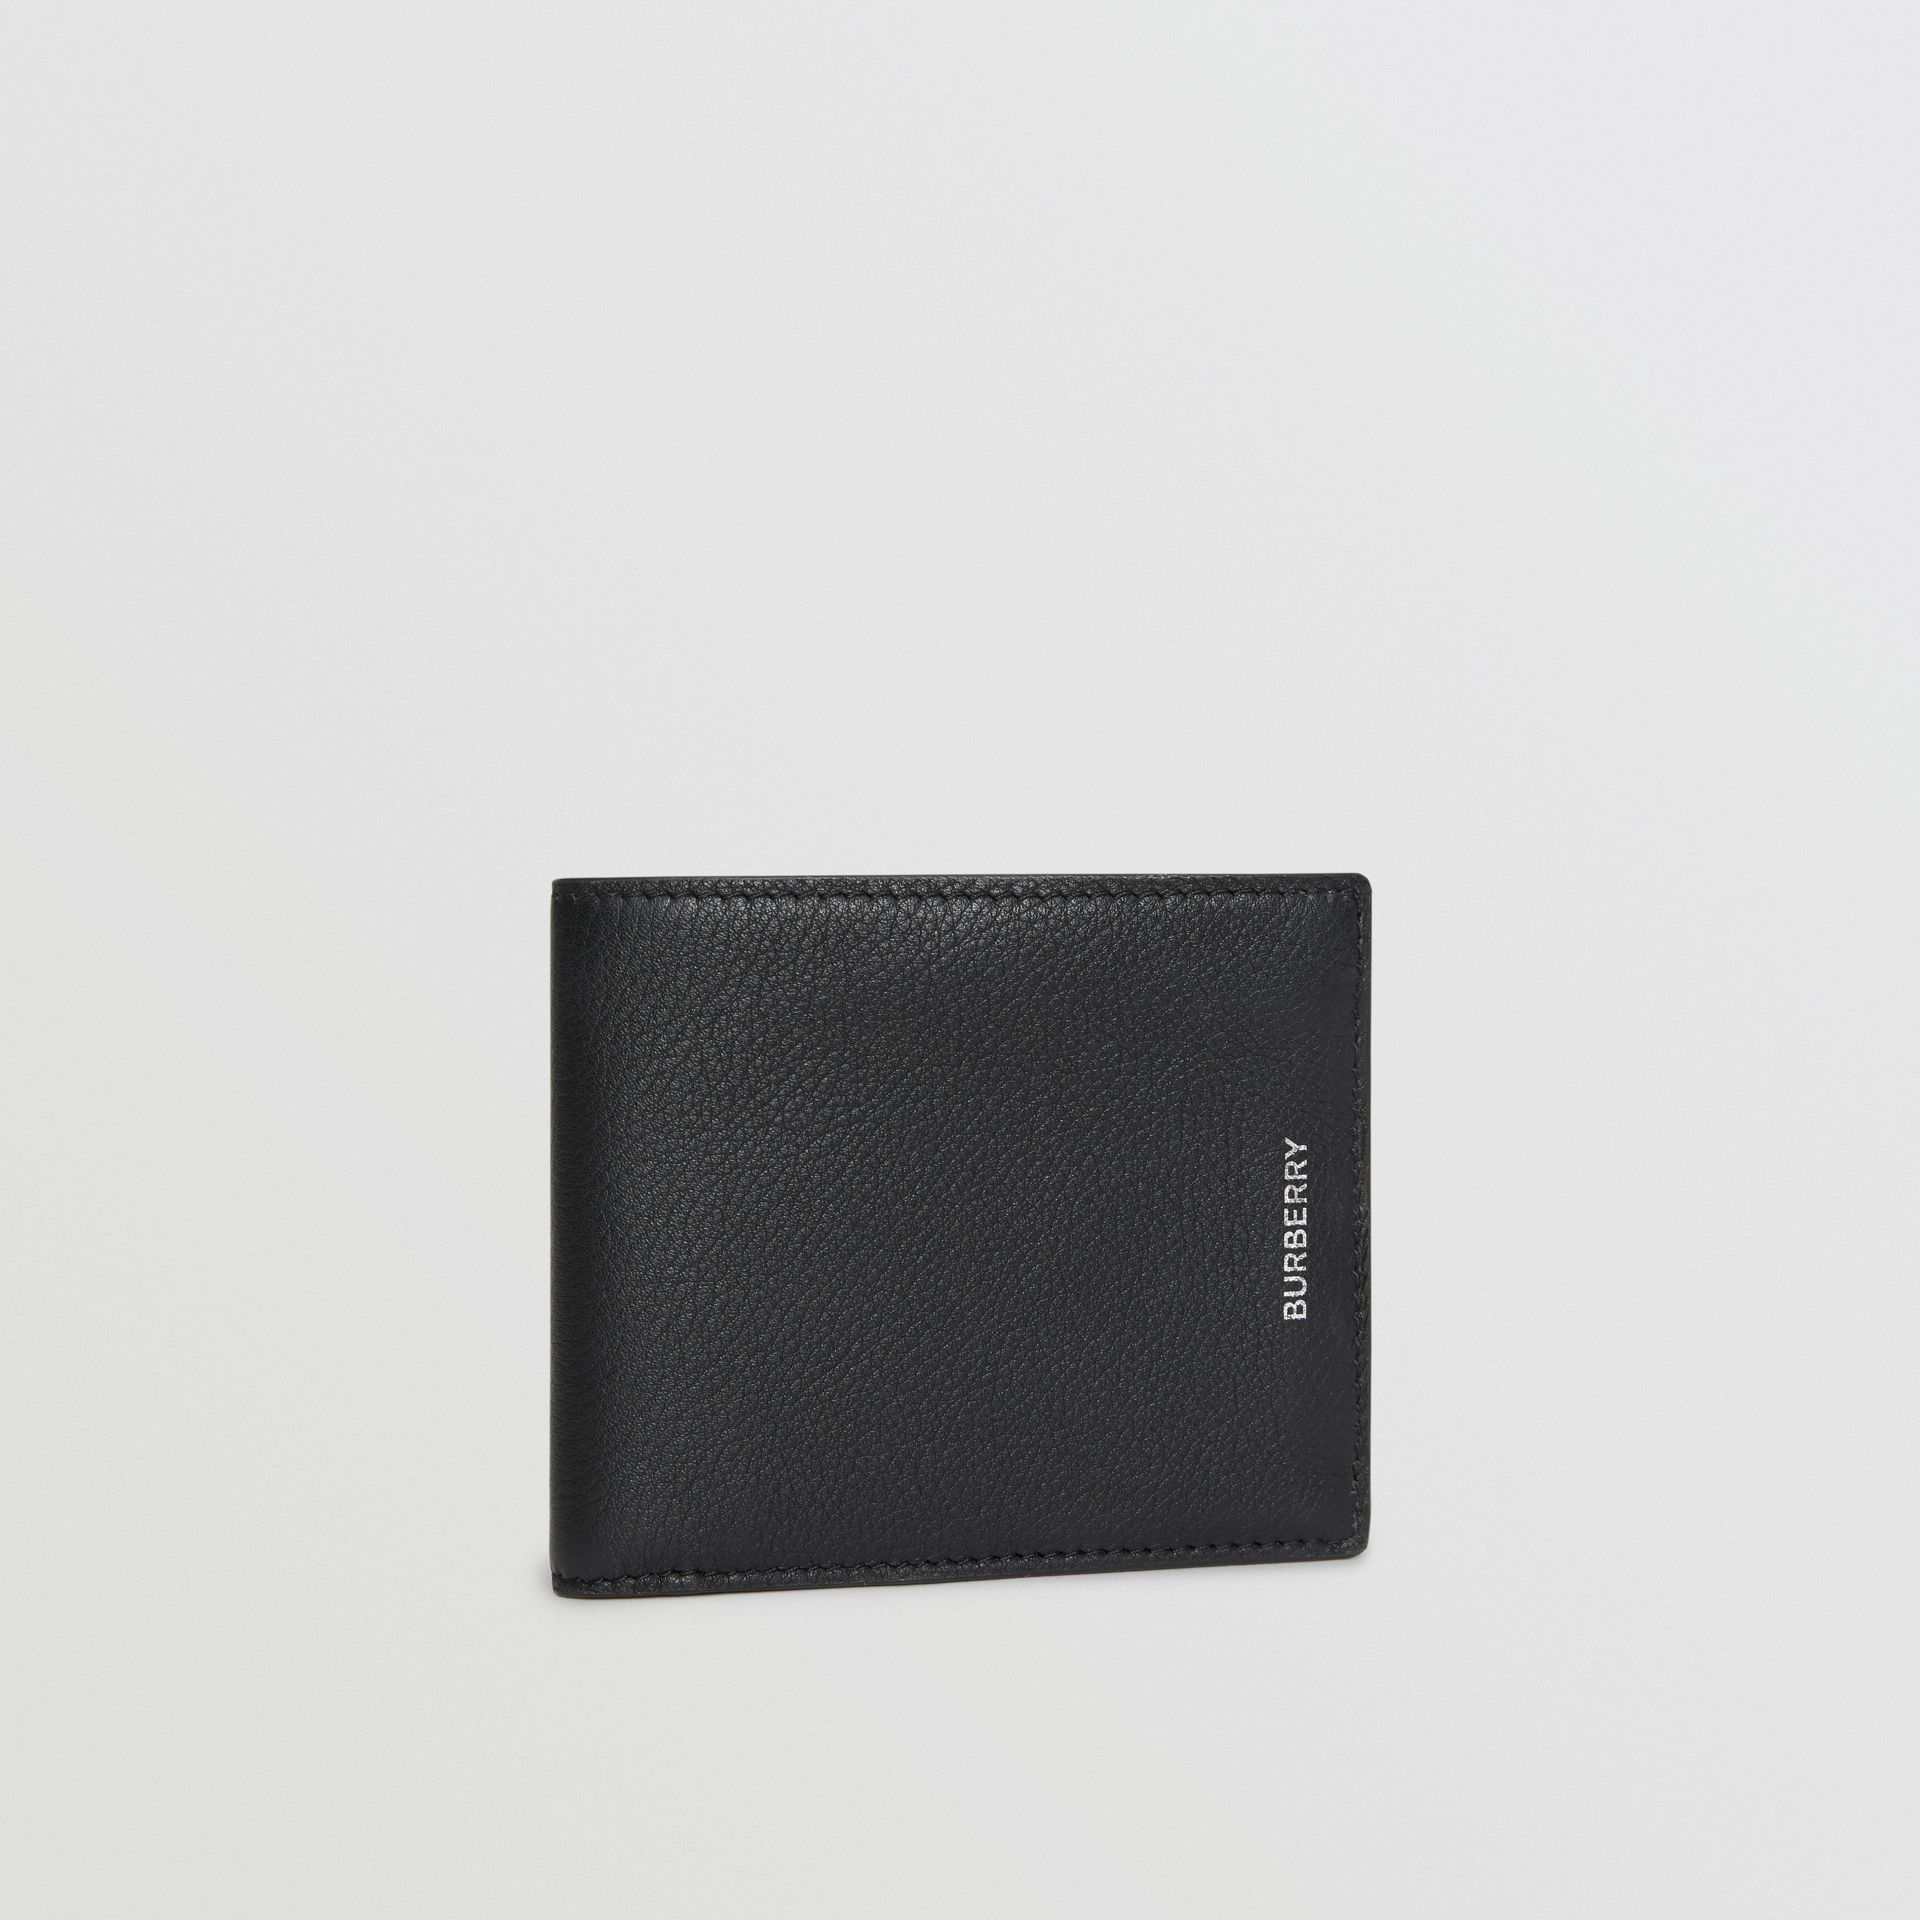 Grainy Leather International Bifold Wallet in Black - Men | Burberry - gallery image 3